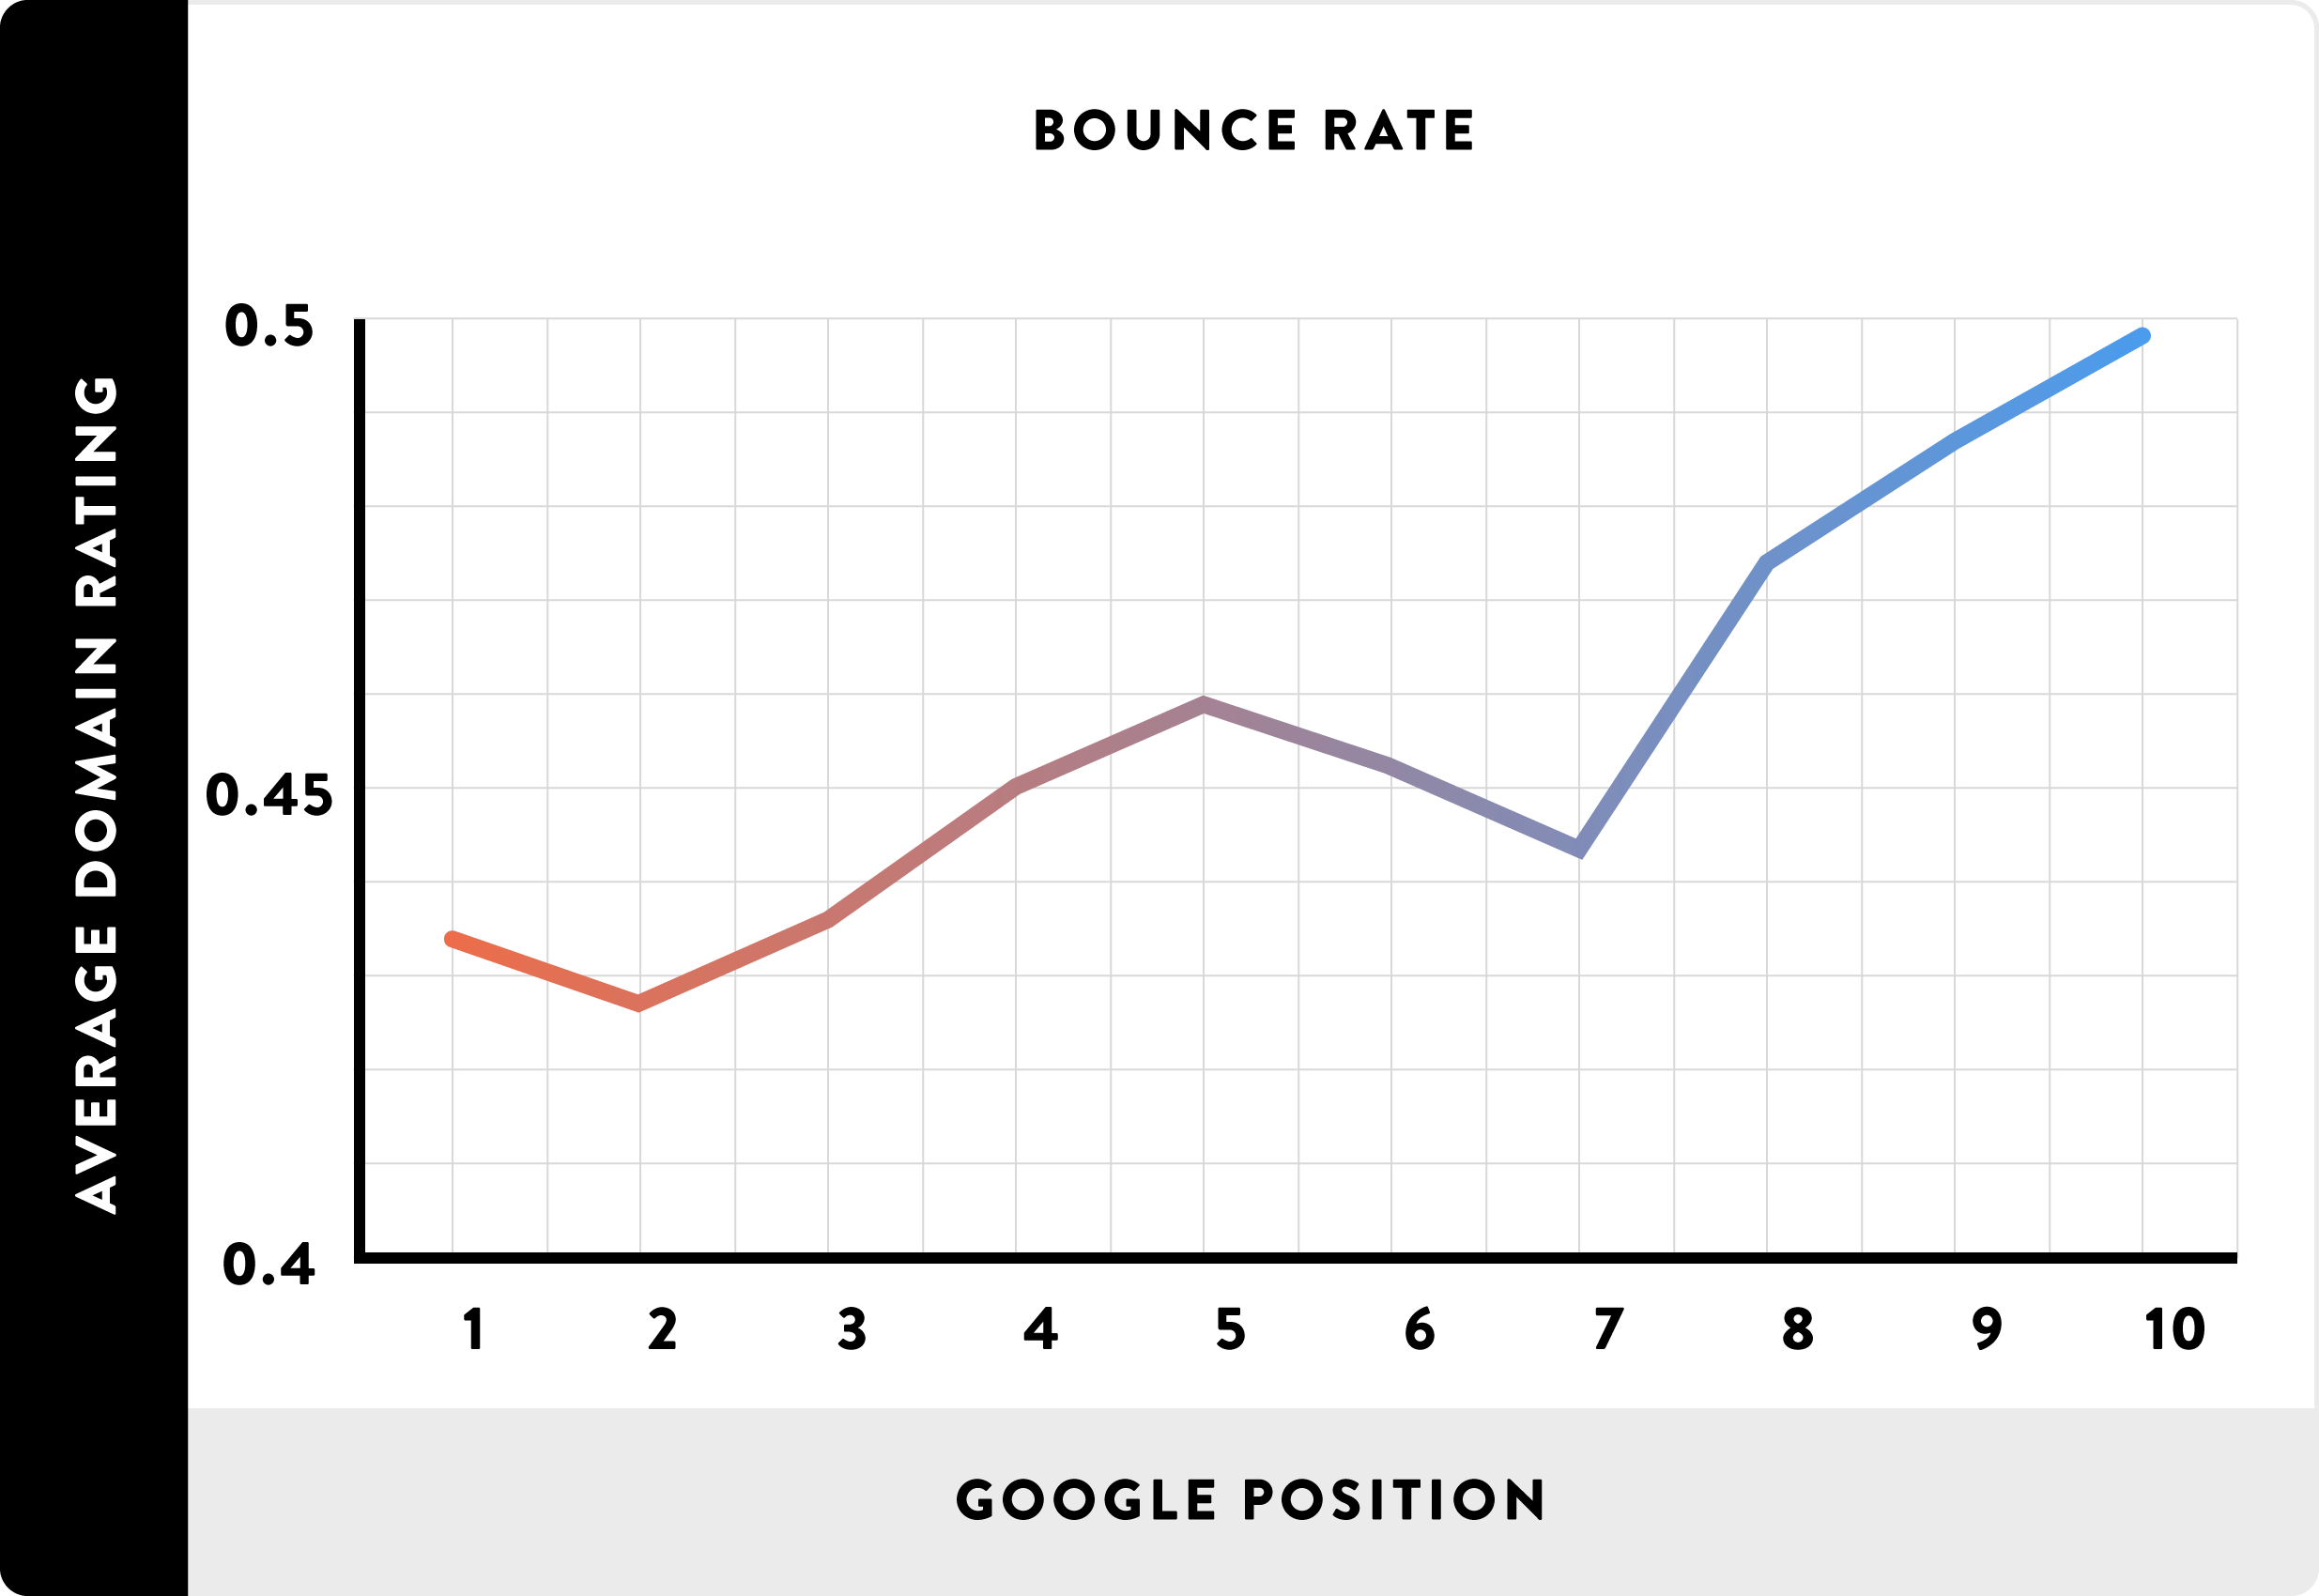 Bounce rate correlated with first page rankings